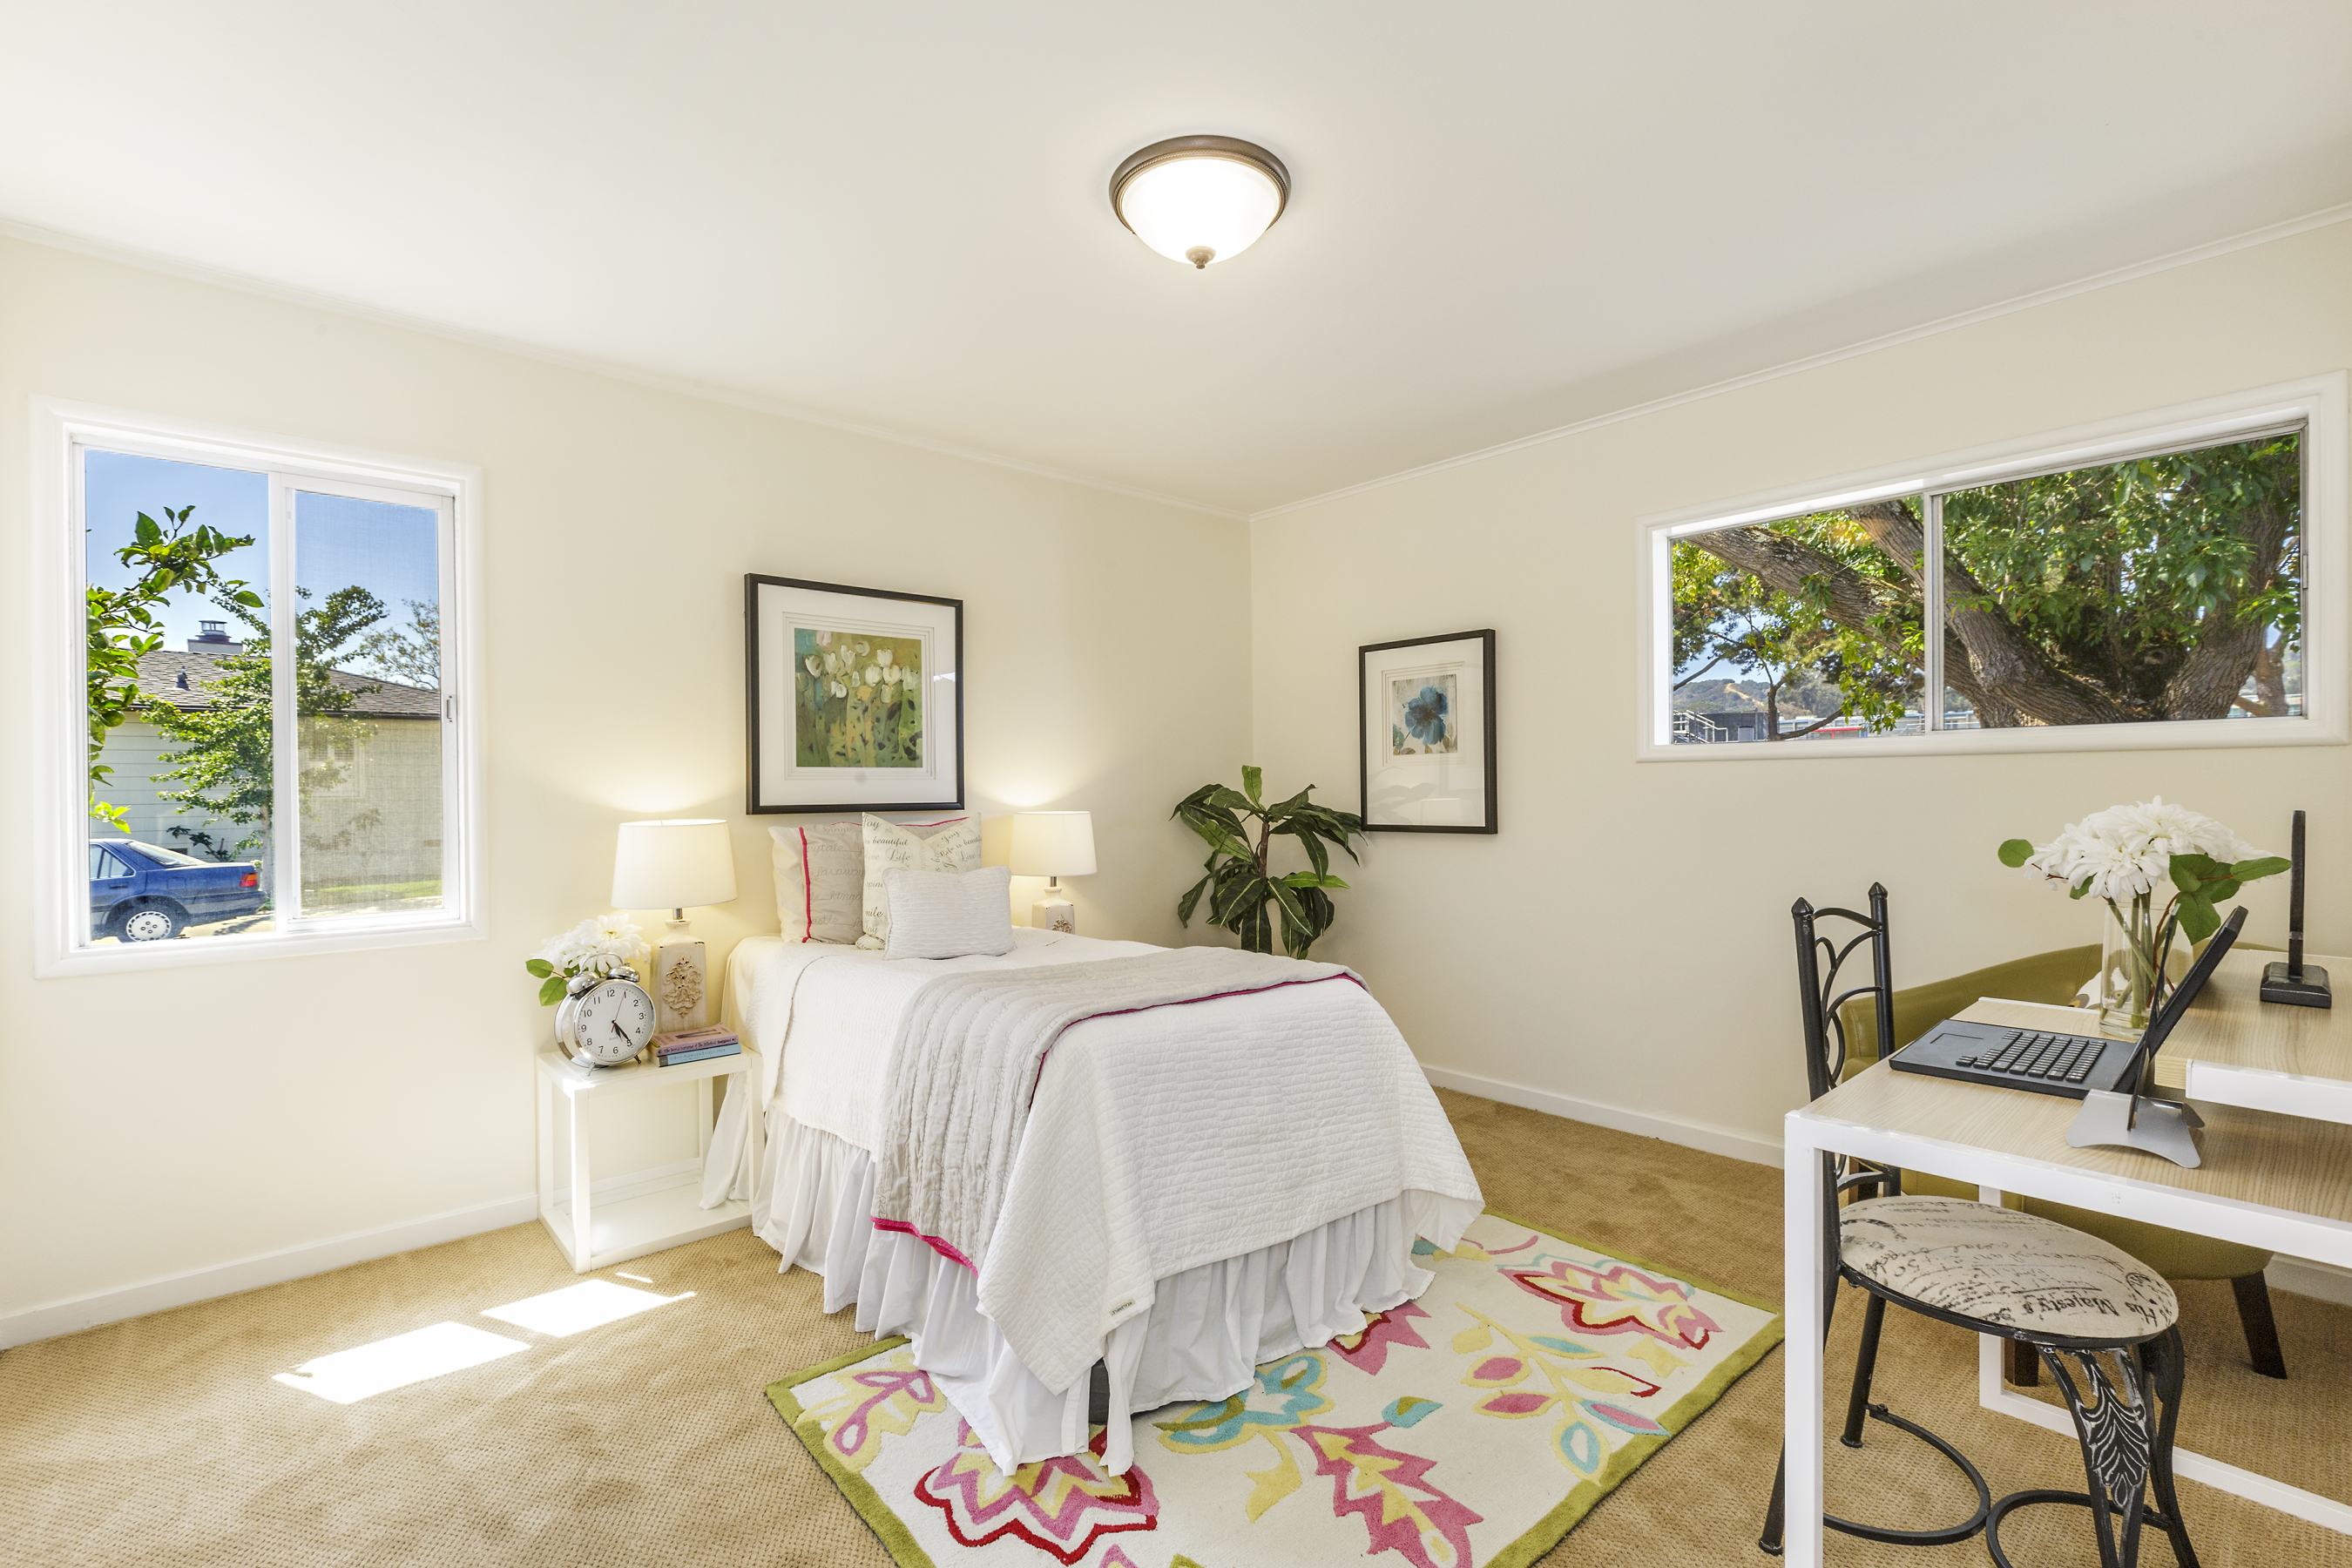 17-3115AlamedaDeLasPulgas-3bed-high-res